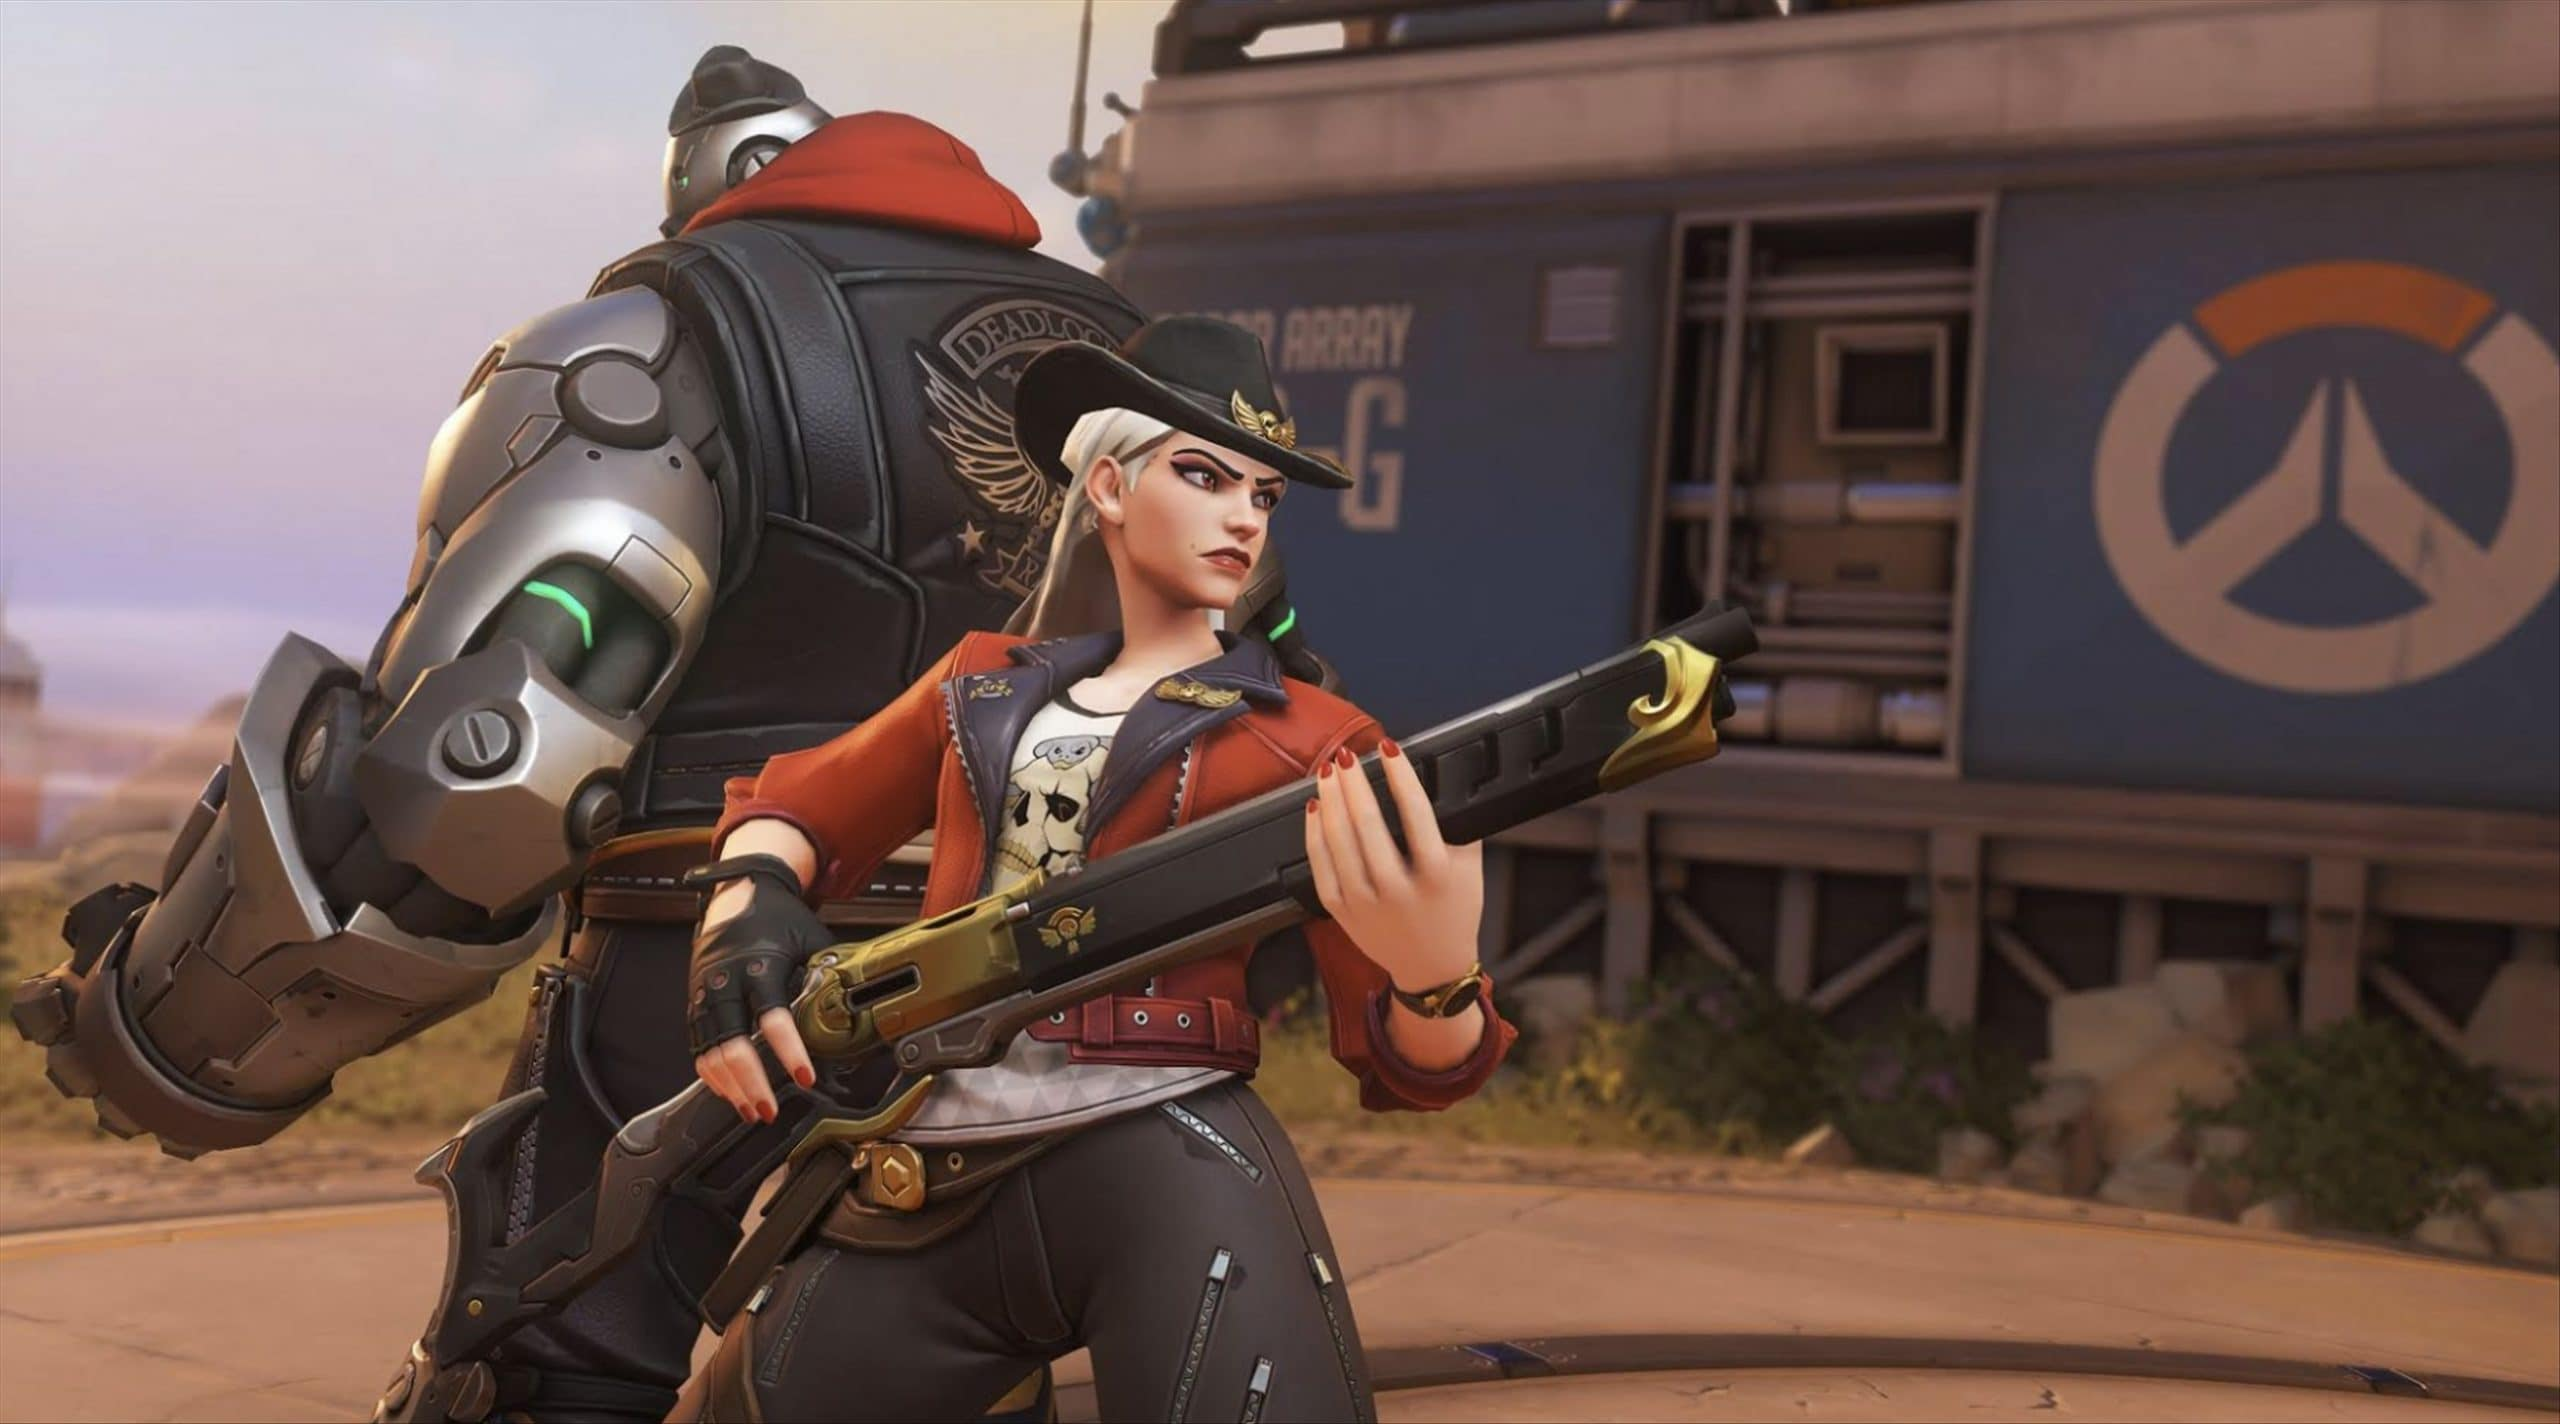 Overwatch Cross-Play is now live, along with Ashe's Deadlock Challenge event